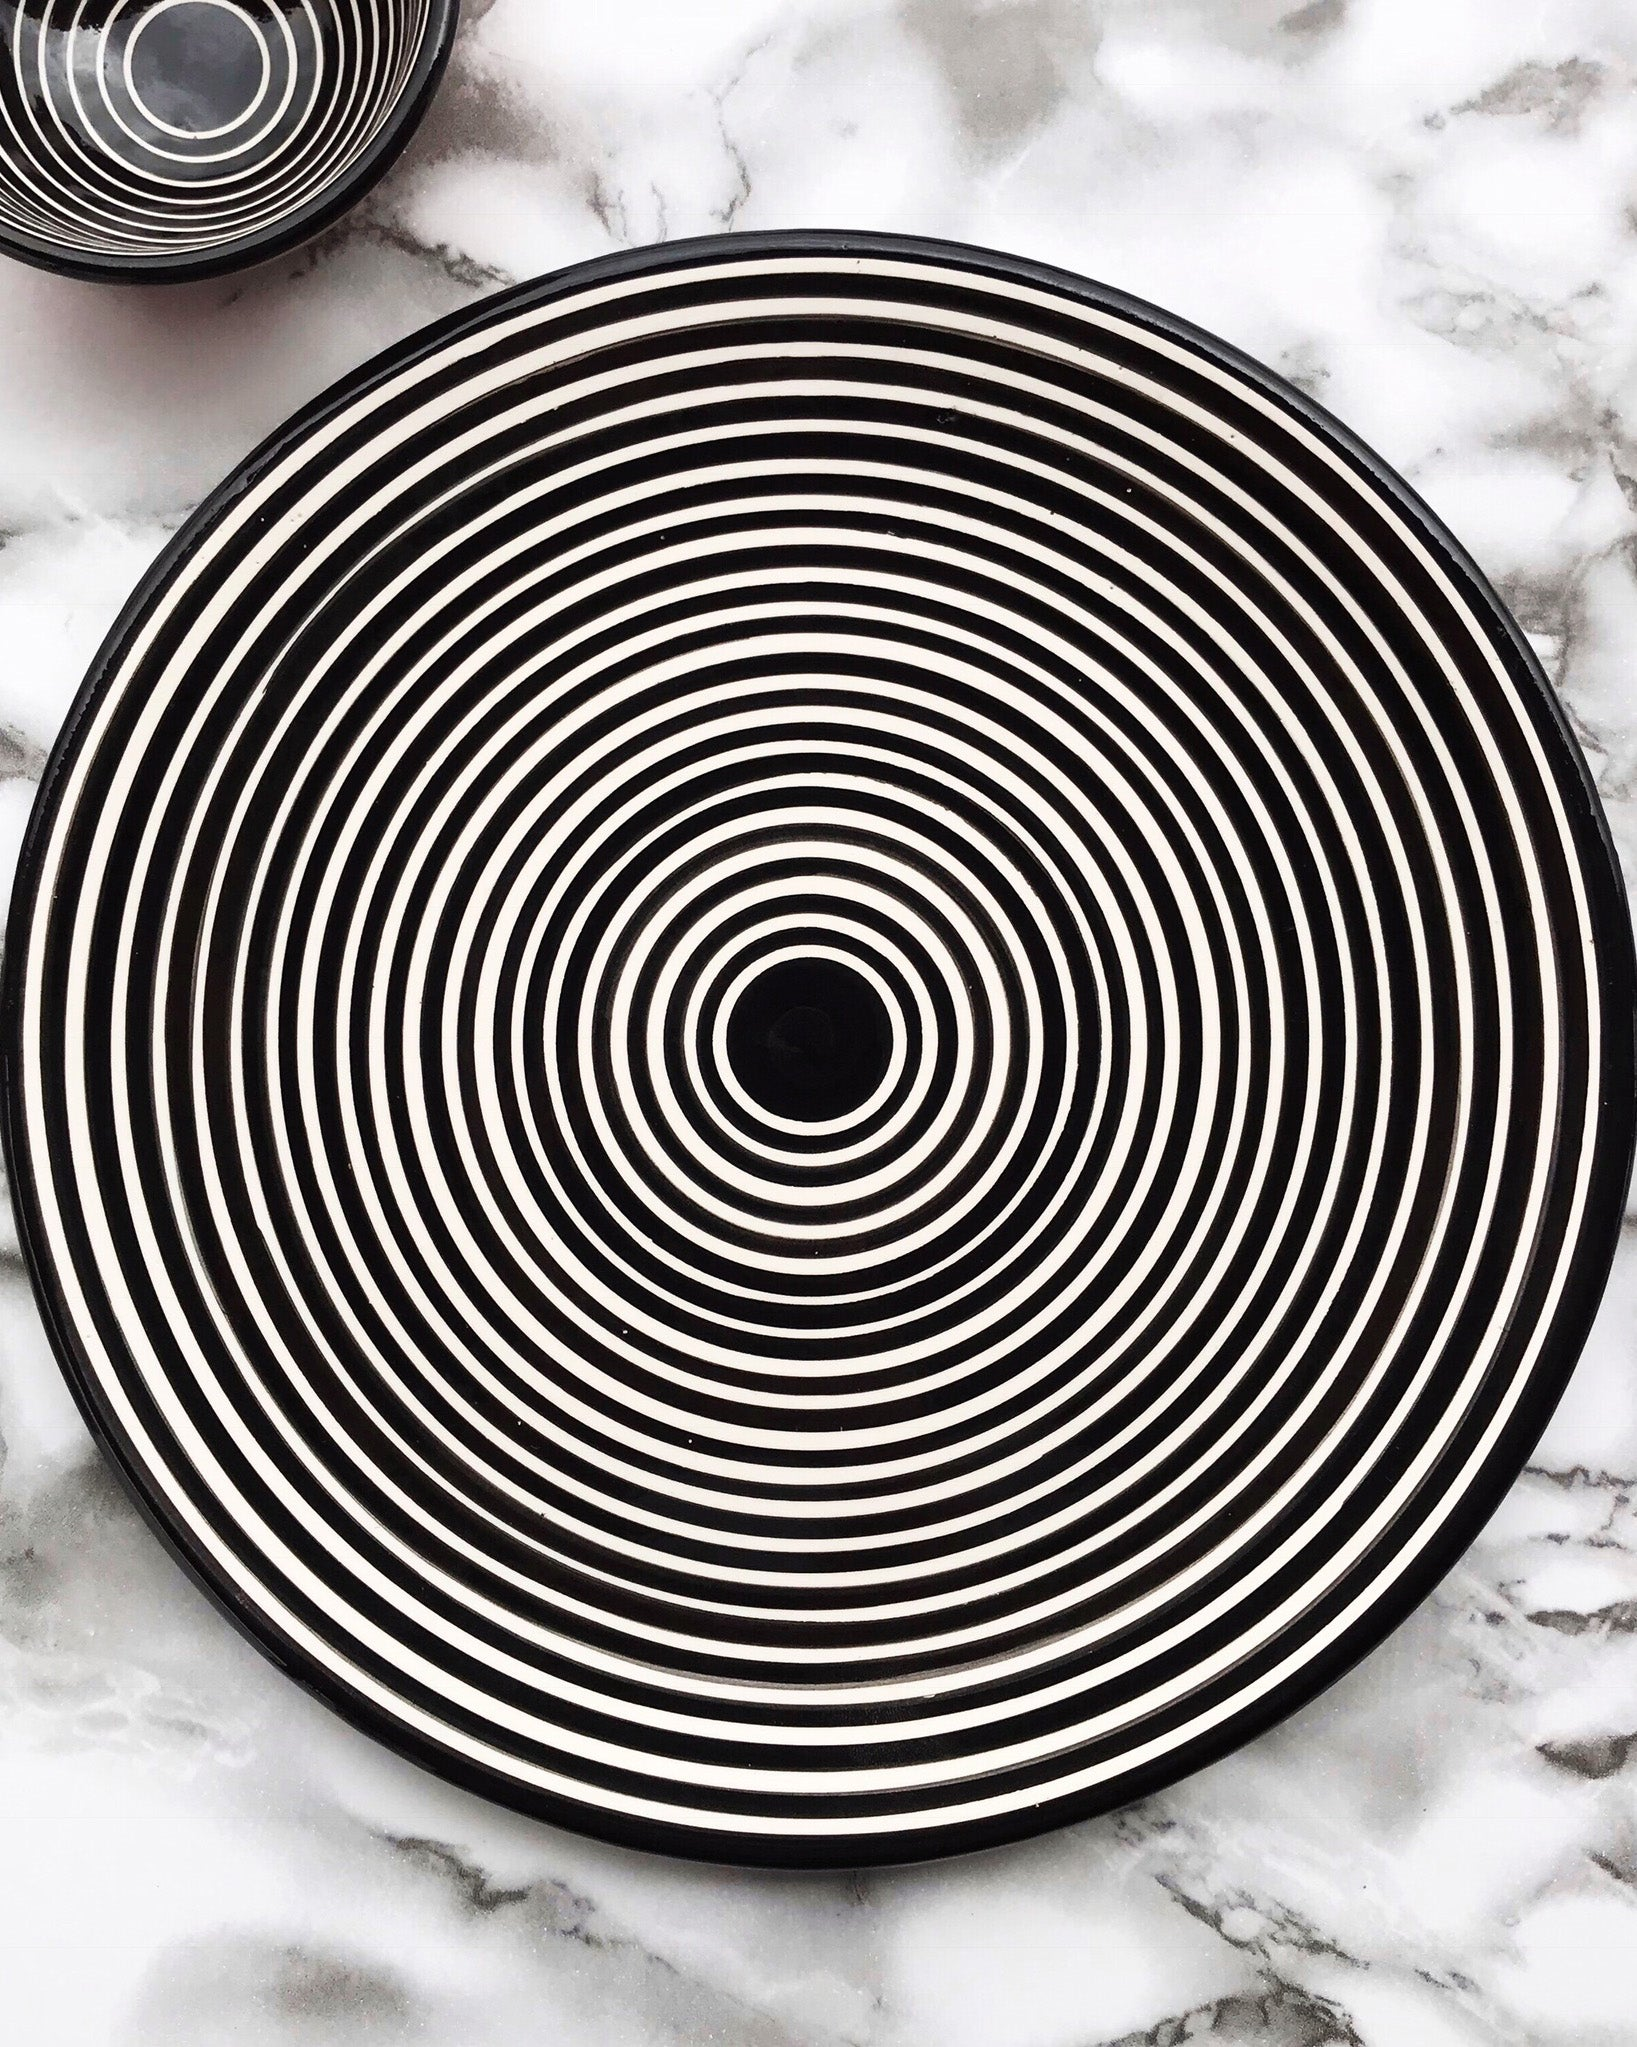 Handmade ceramic cheese board platter geometric pattern black and white B&W